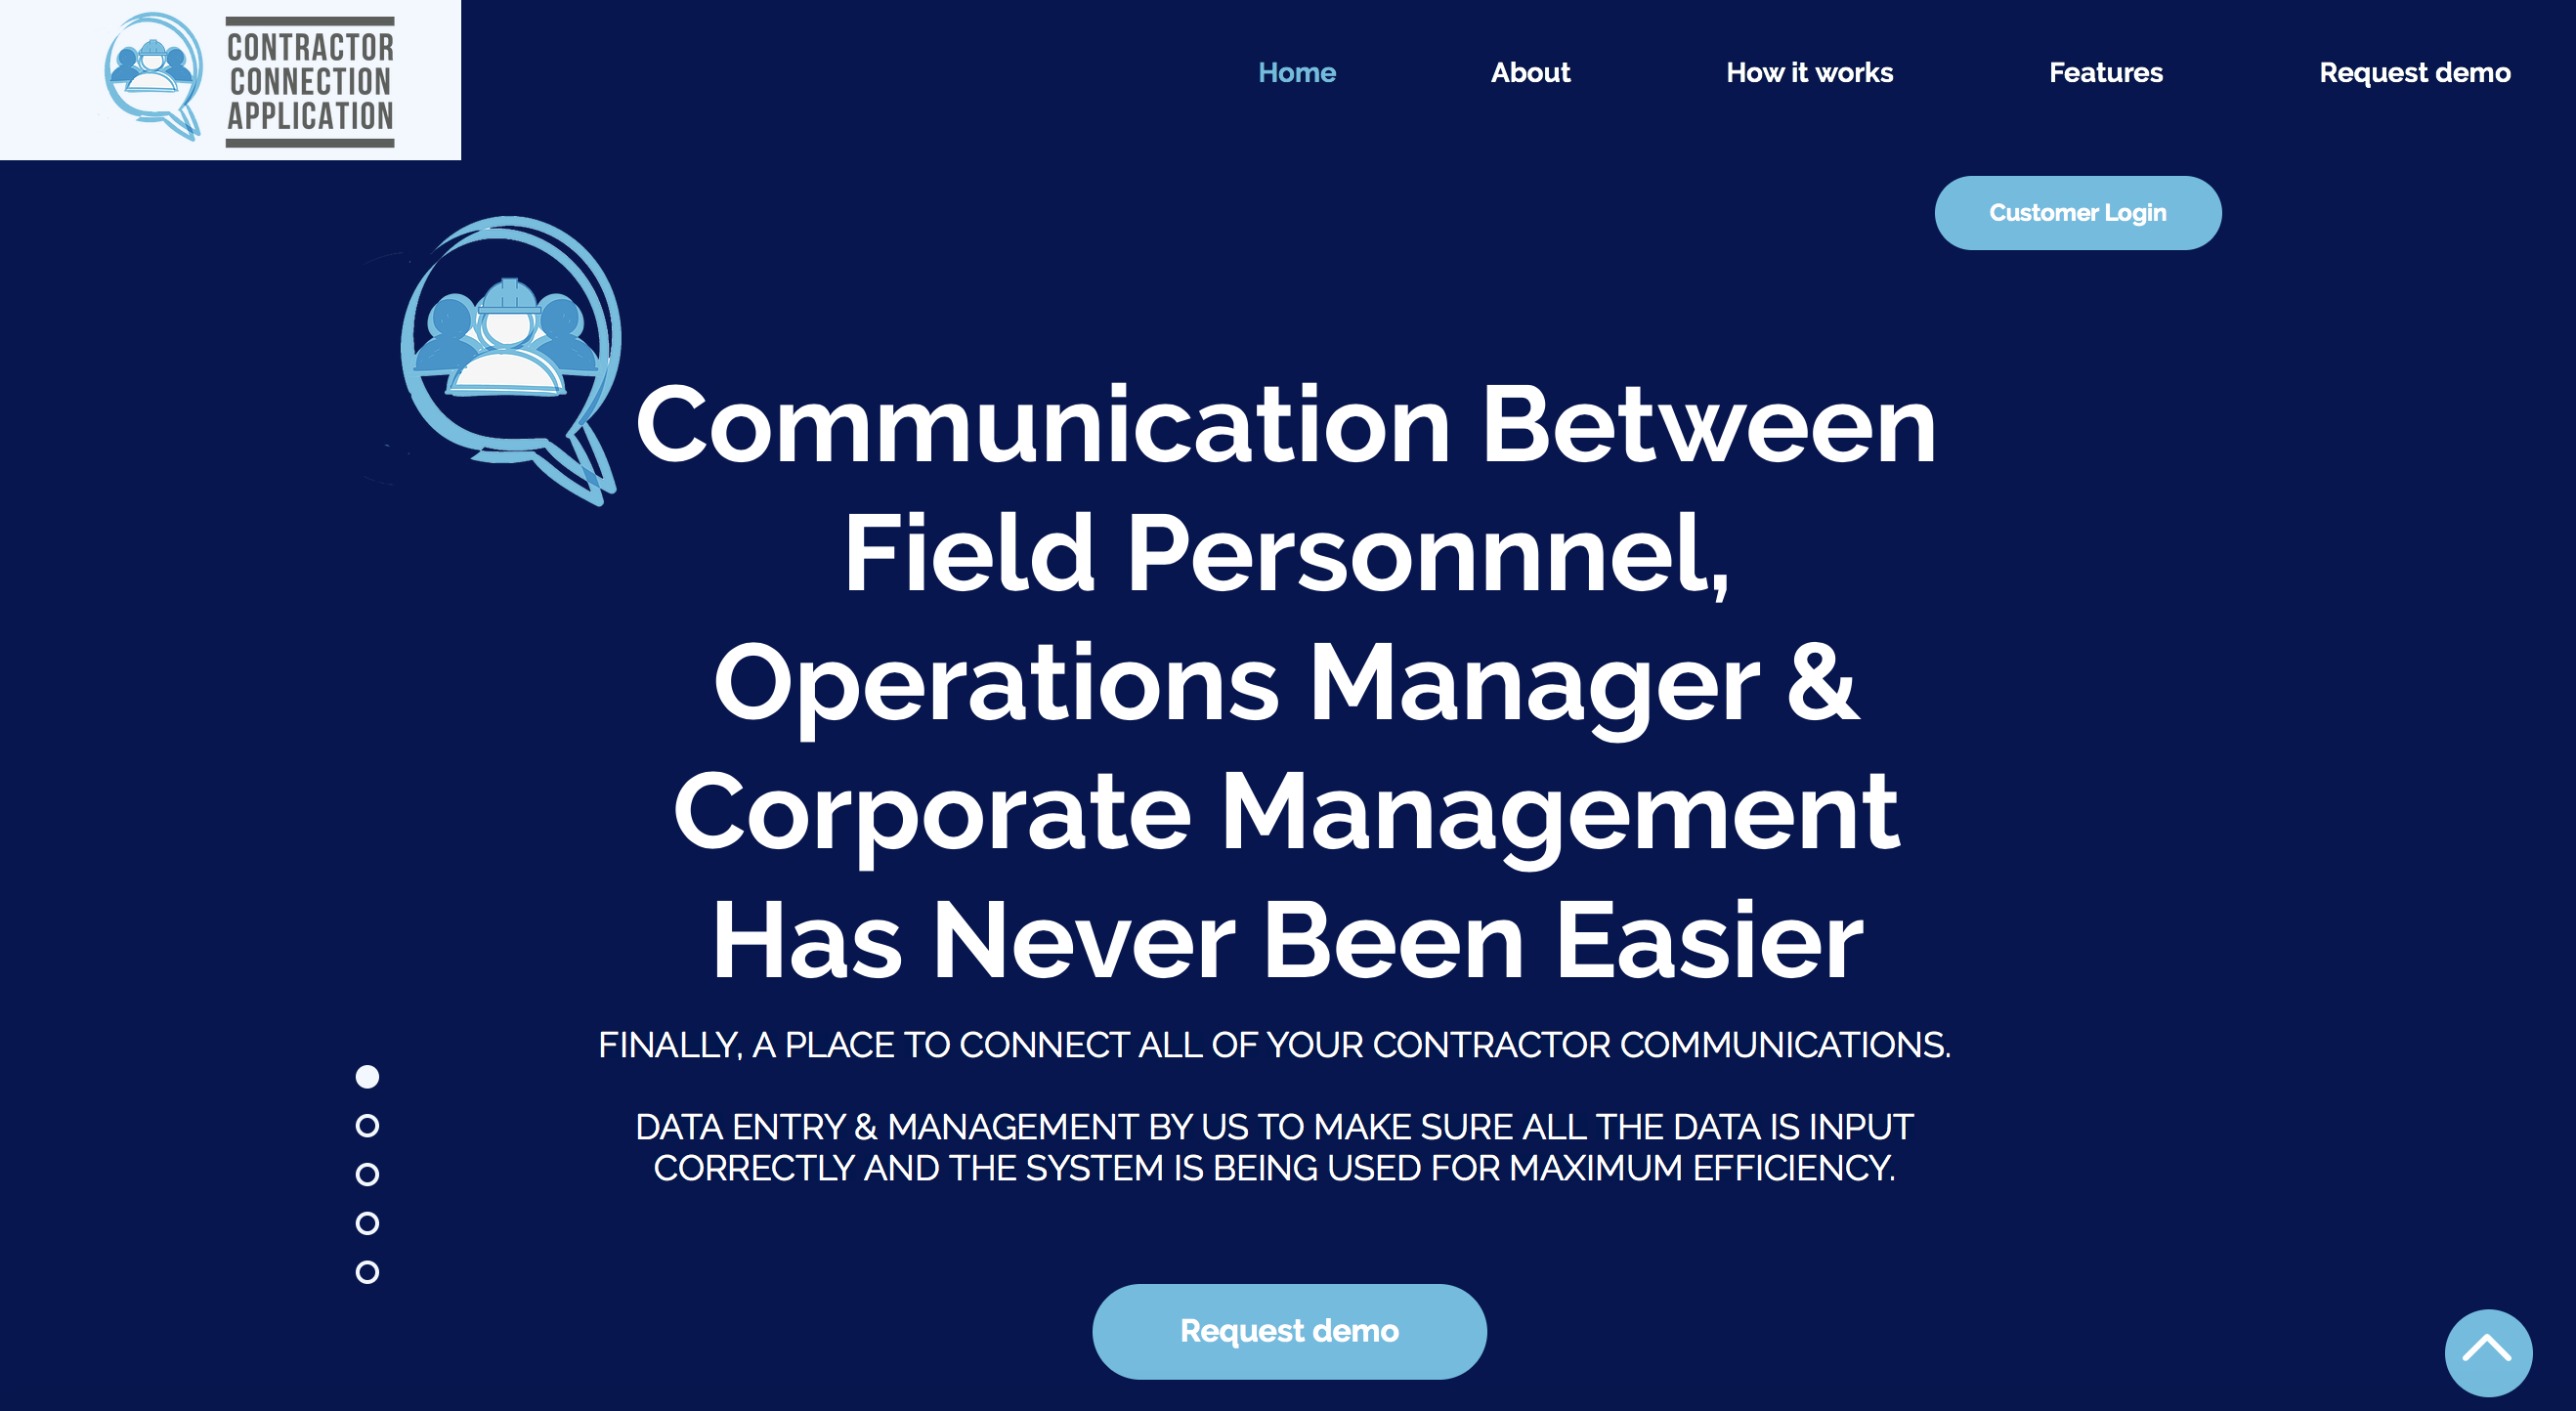 Contractor Connection Application